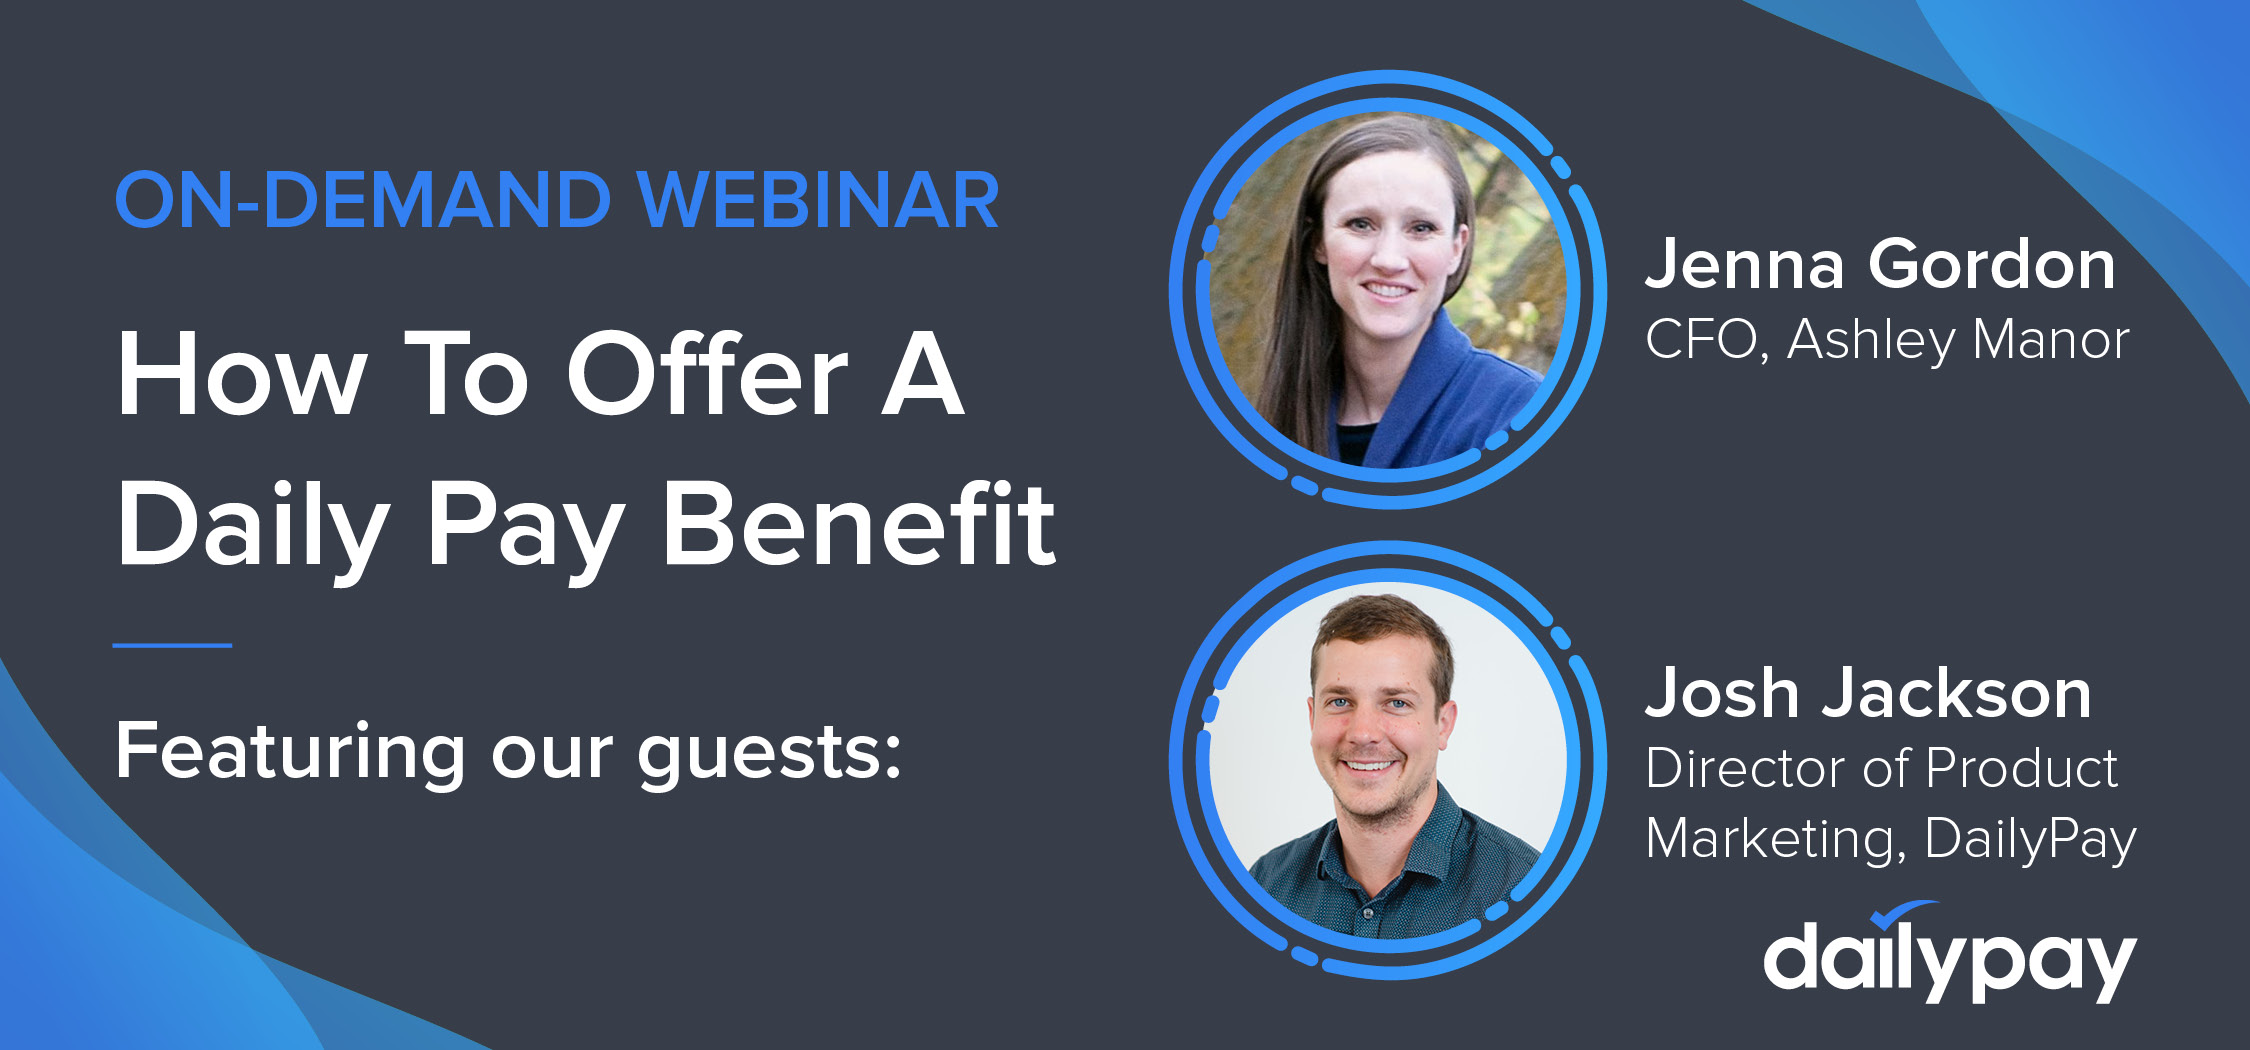 DailyPay On-Demand Webinar with Ashley Manor